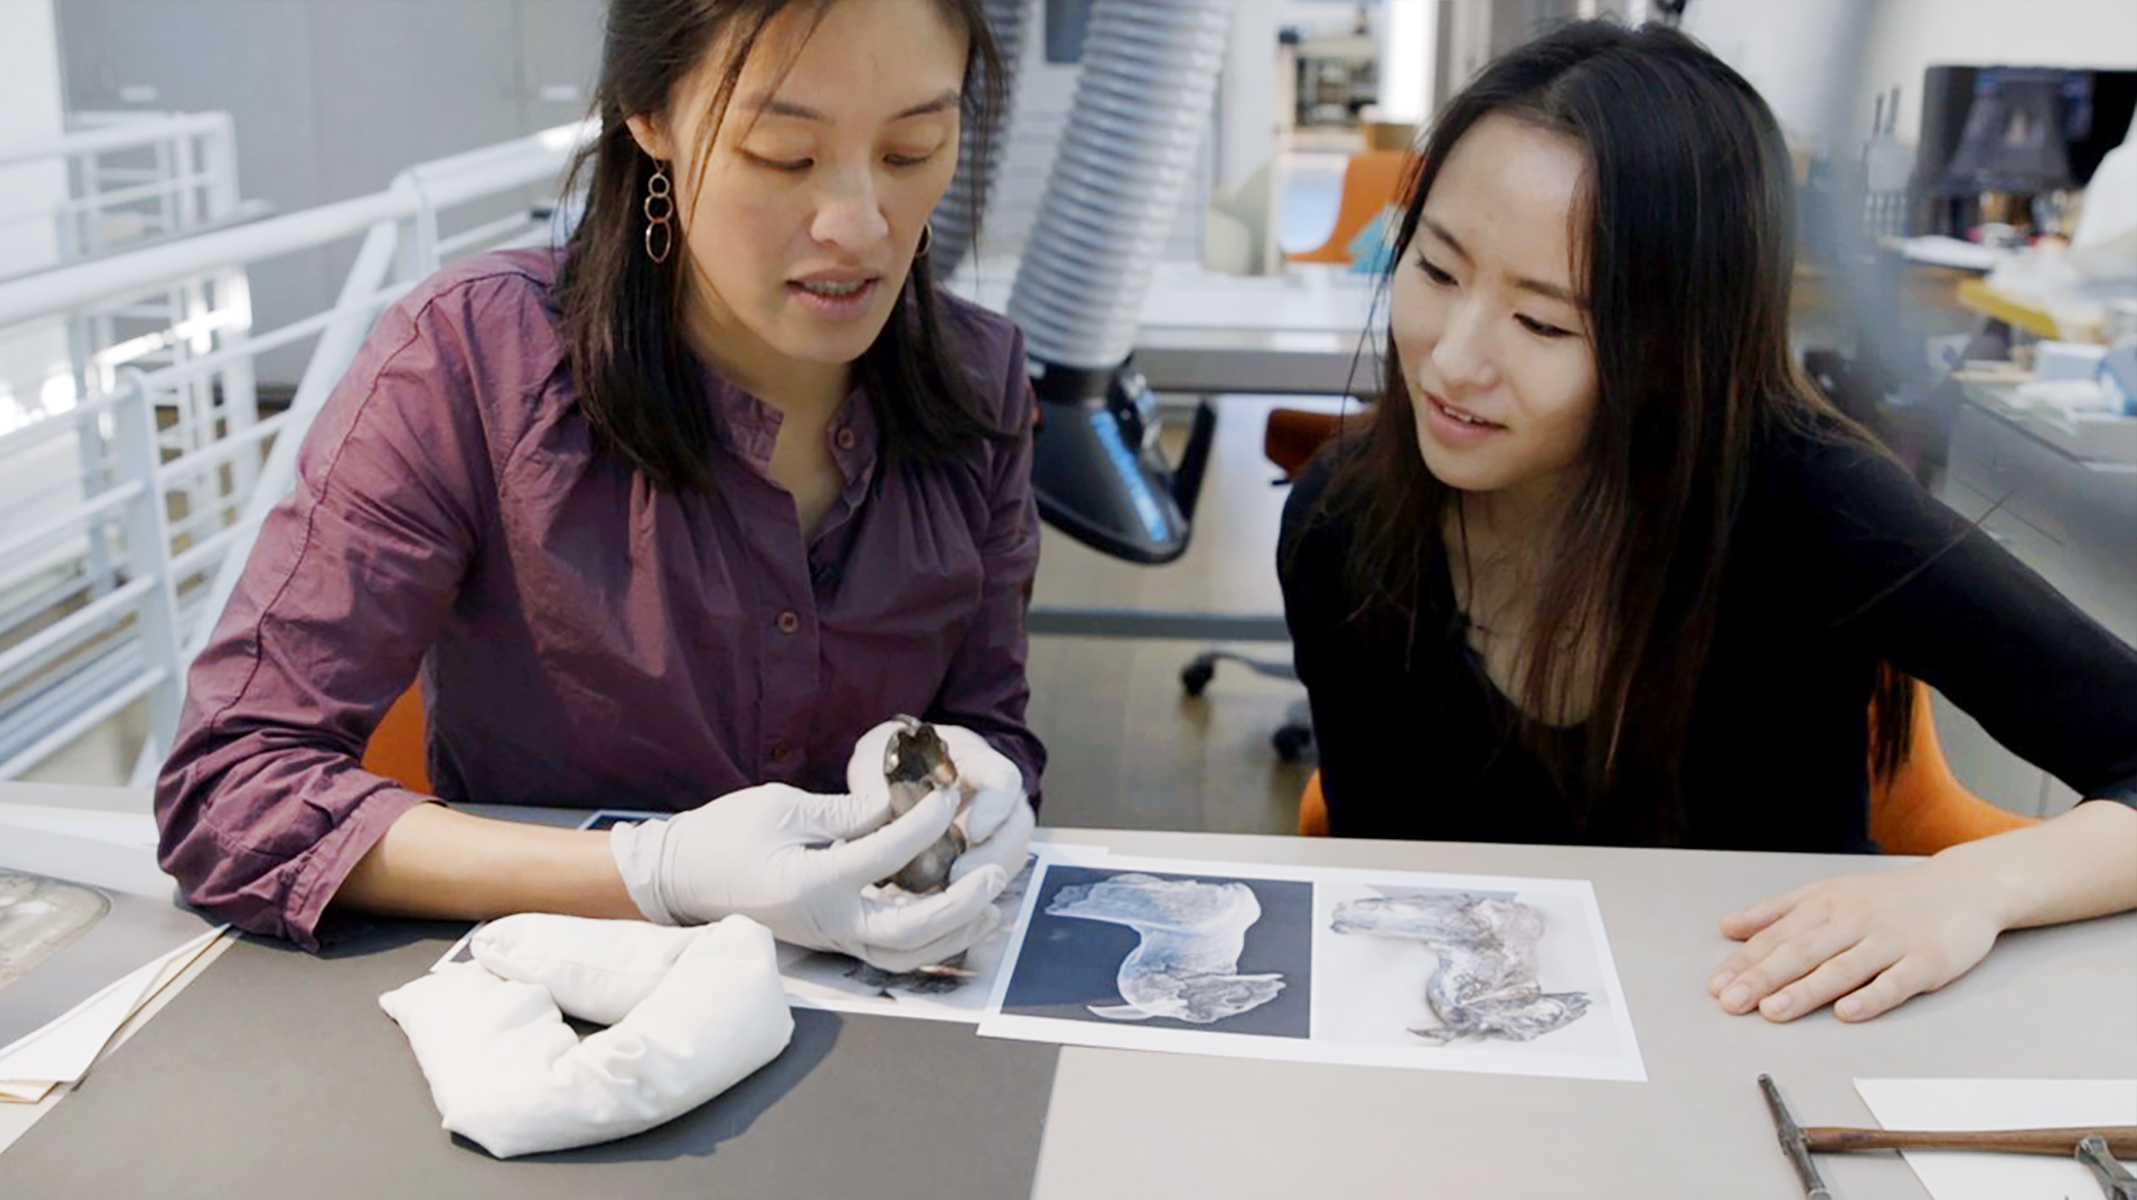 Angela Chang, left, and Anjie Liu examine a fragment of a silver doe-shaped rhyton. On the table in front of them are X-ray images of the same object.